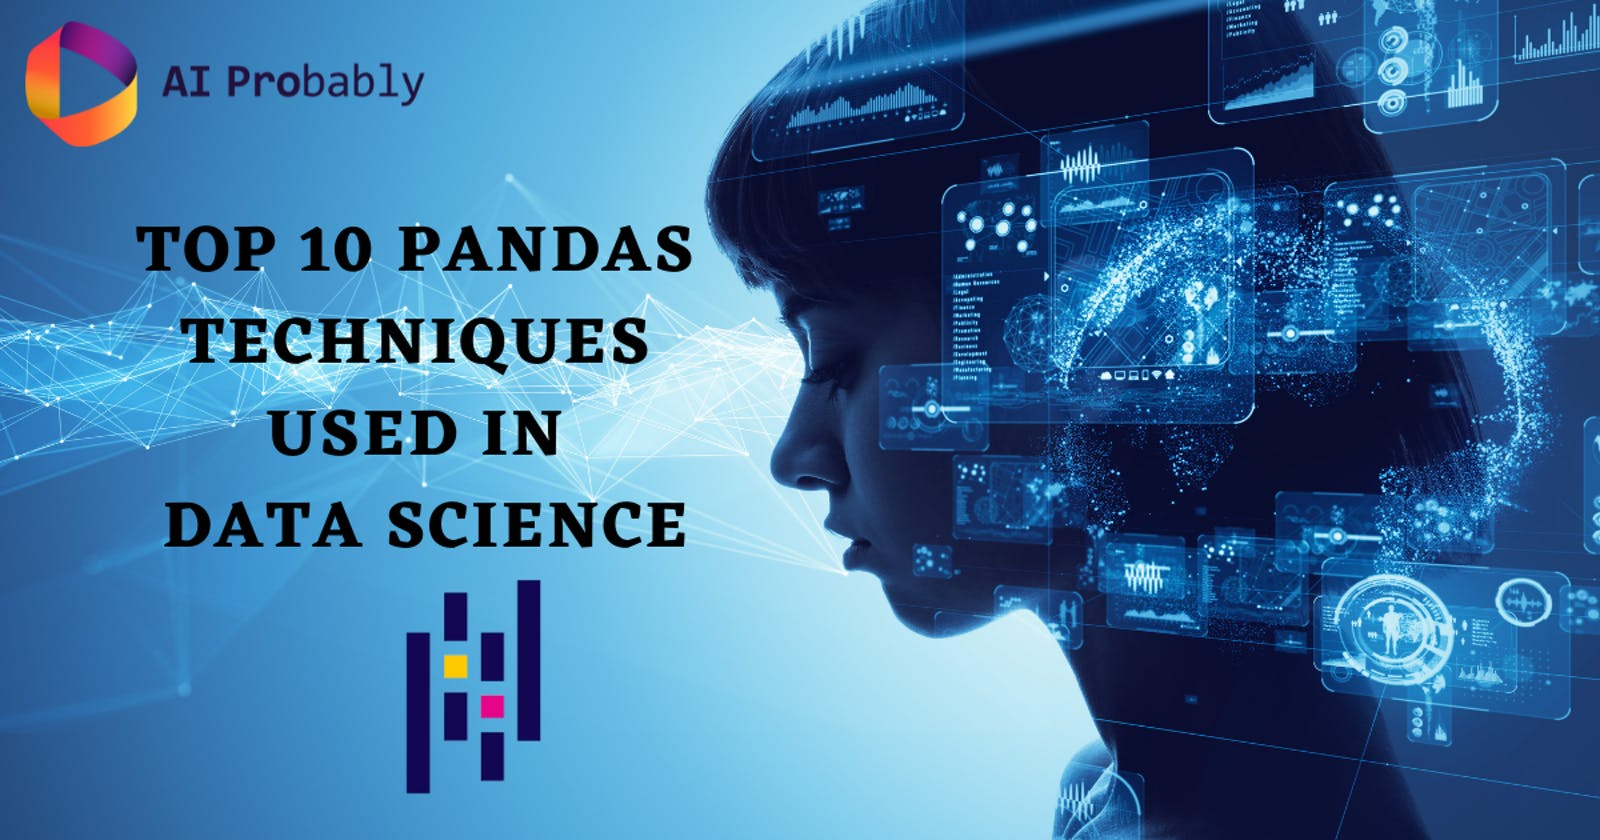 Top 10 Pandas techniques used in Data Science